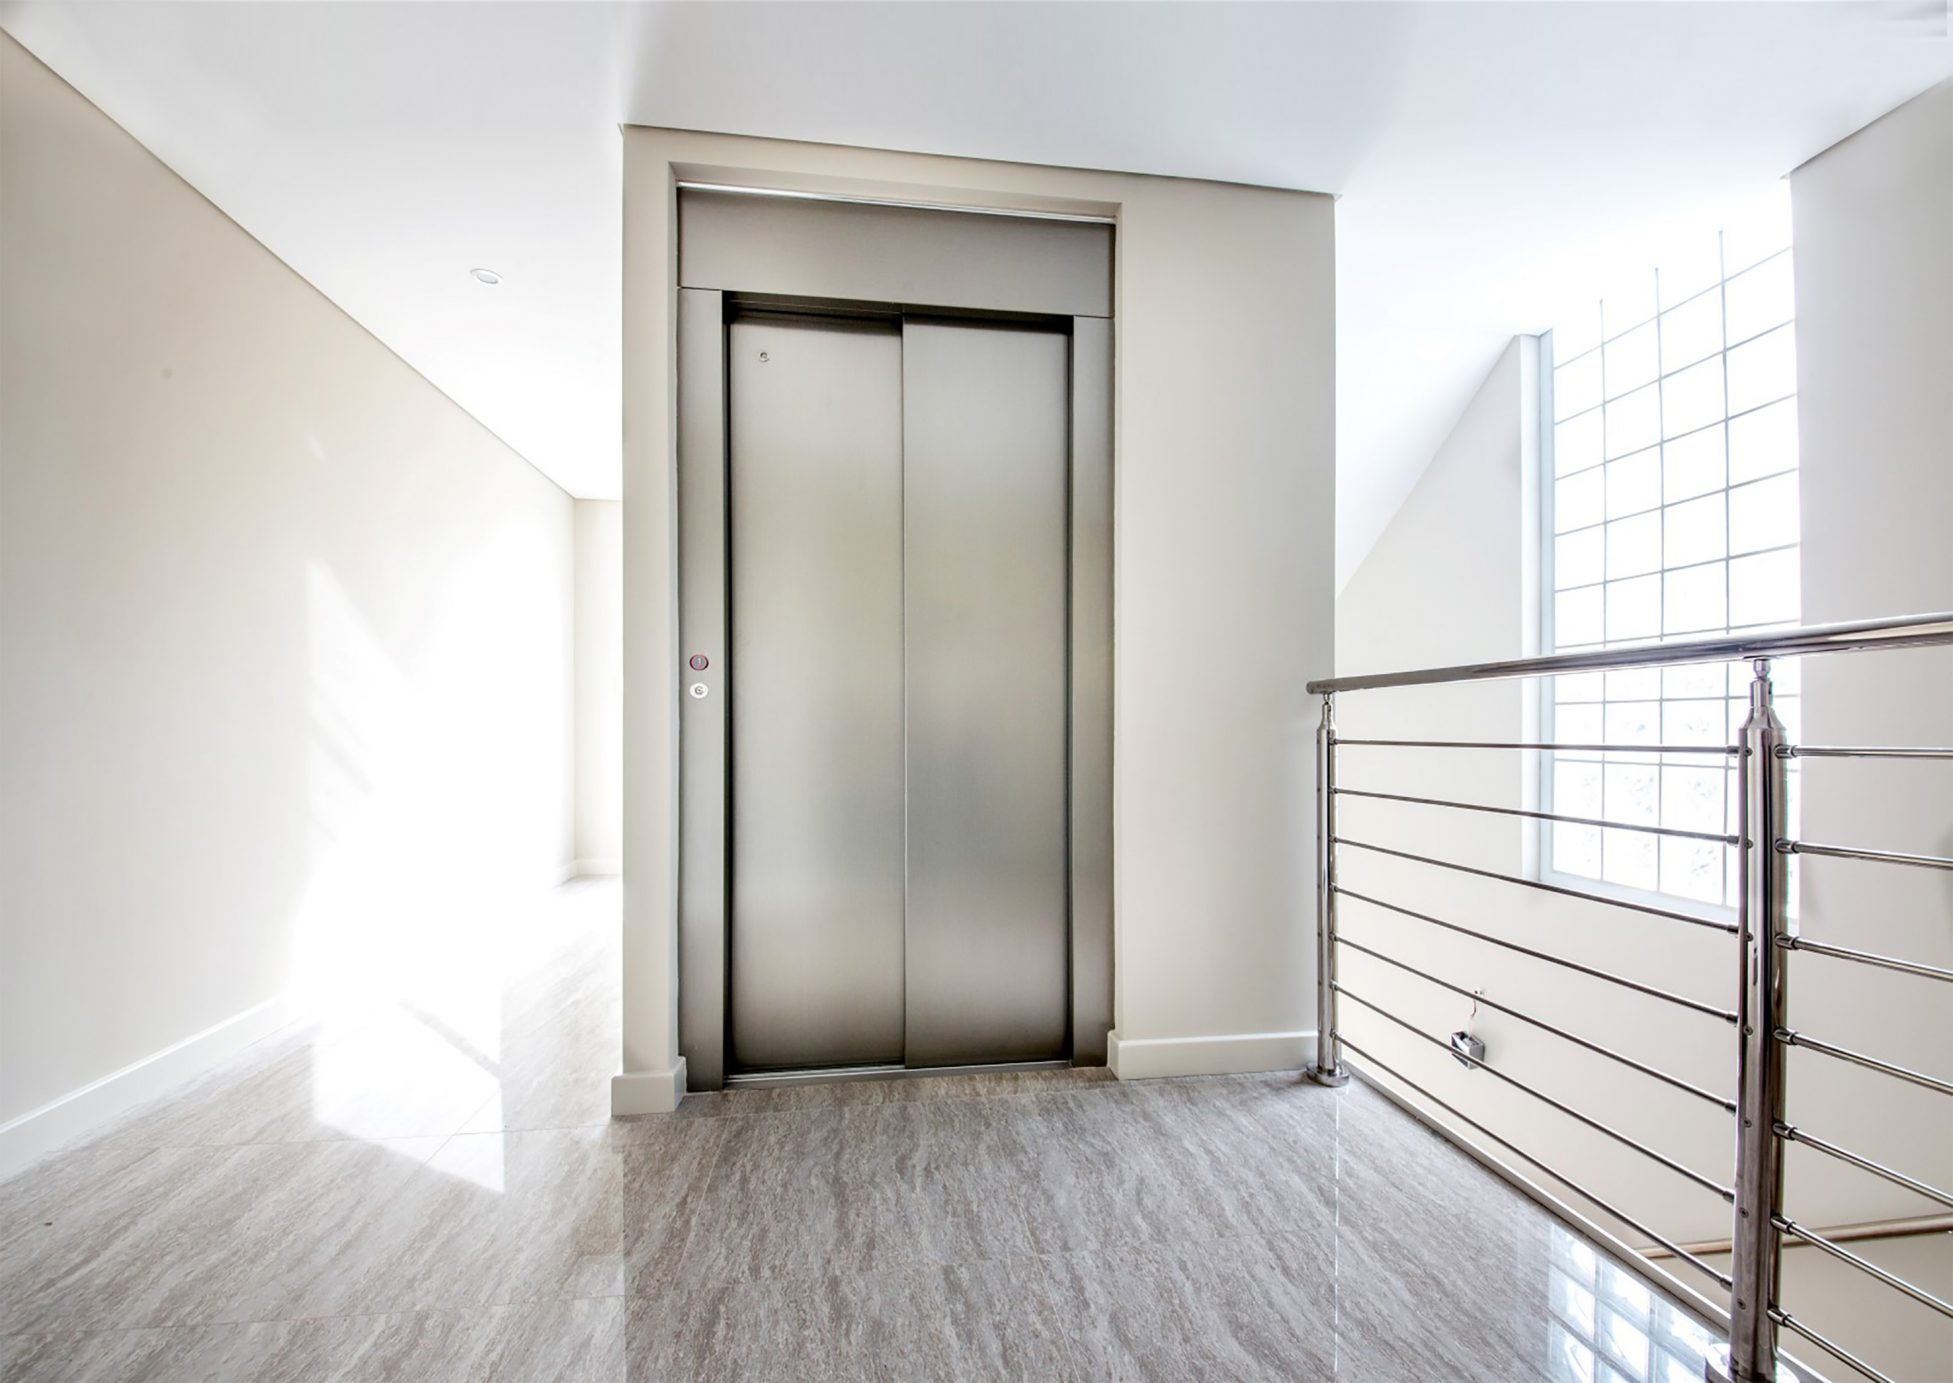 Residential Royal Suite Lift - Brushed or Mirrored Stainless Steel